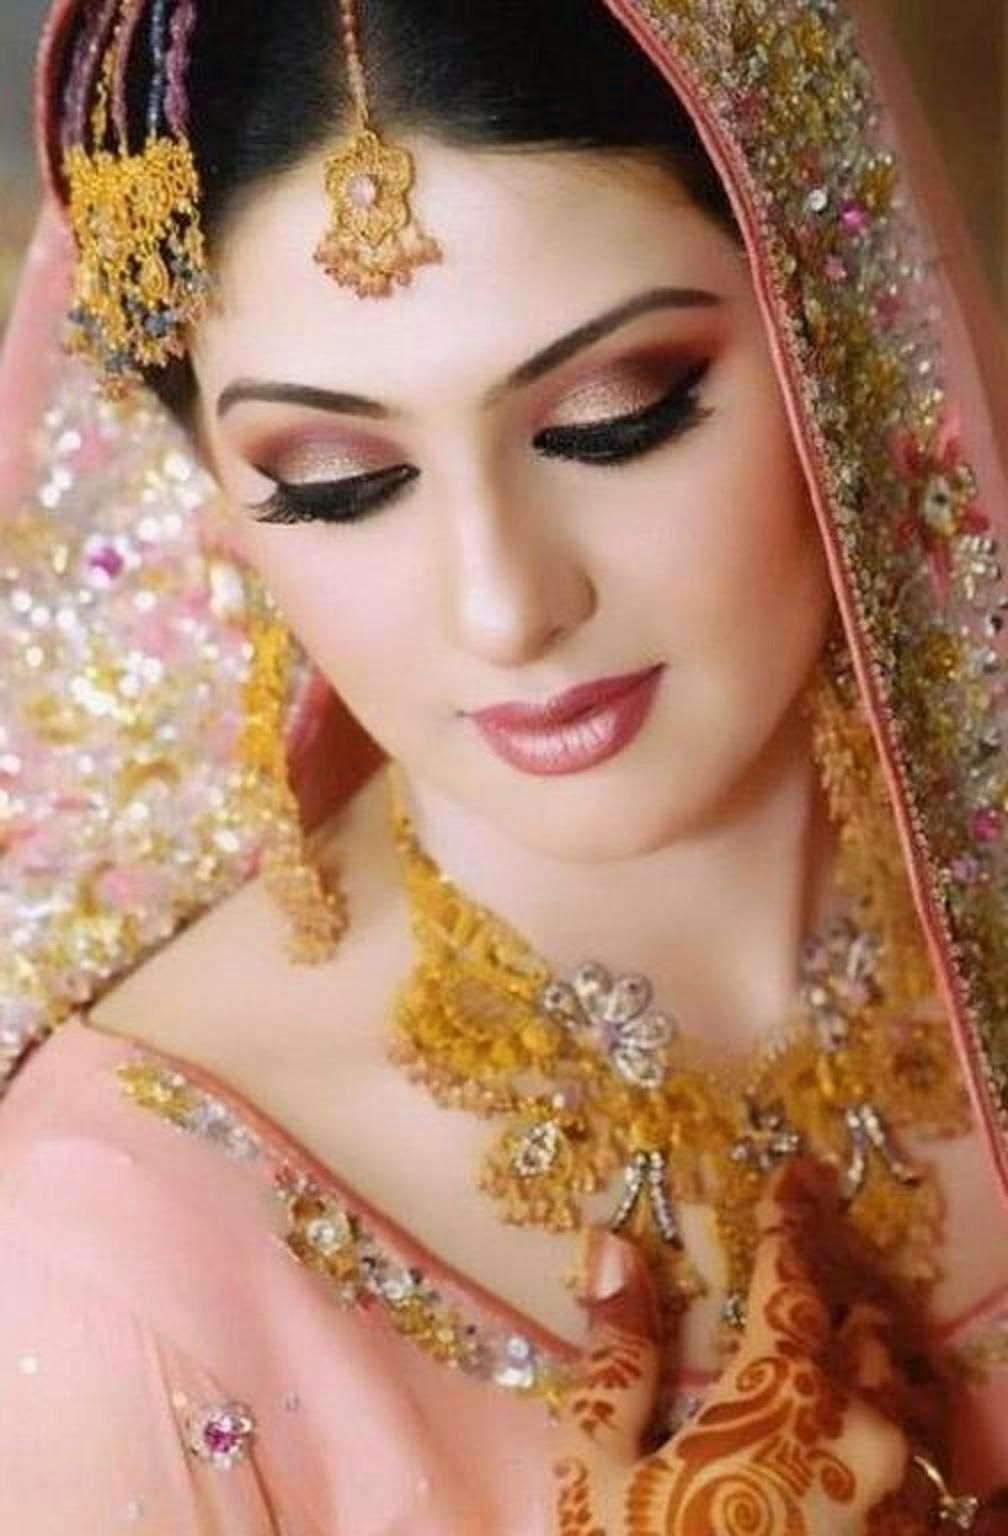 Dulhan Images Hd Download 1008x1536 Wallpaper Teahub Io